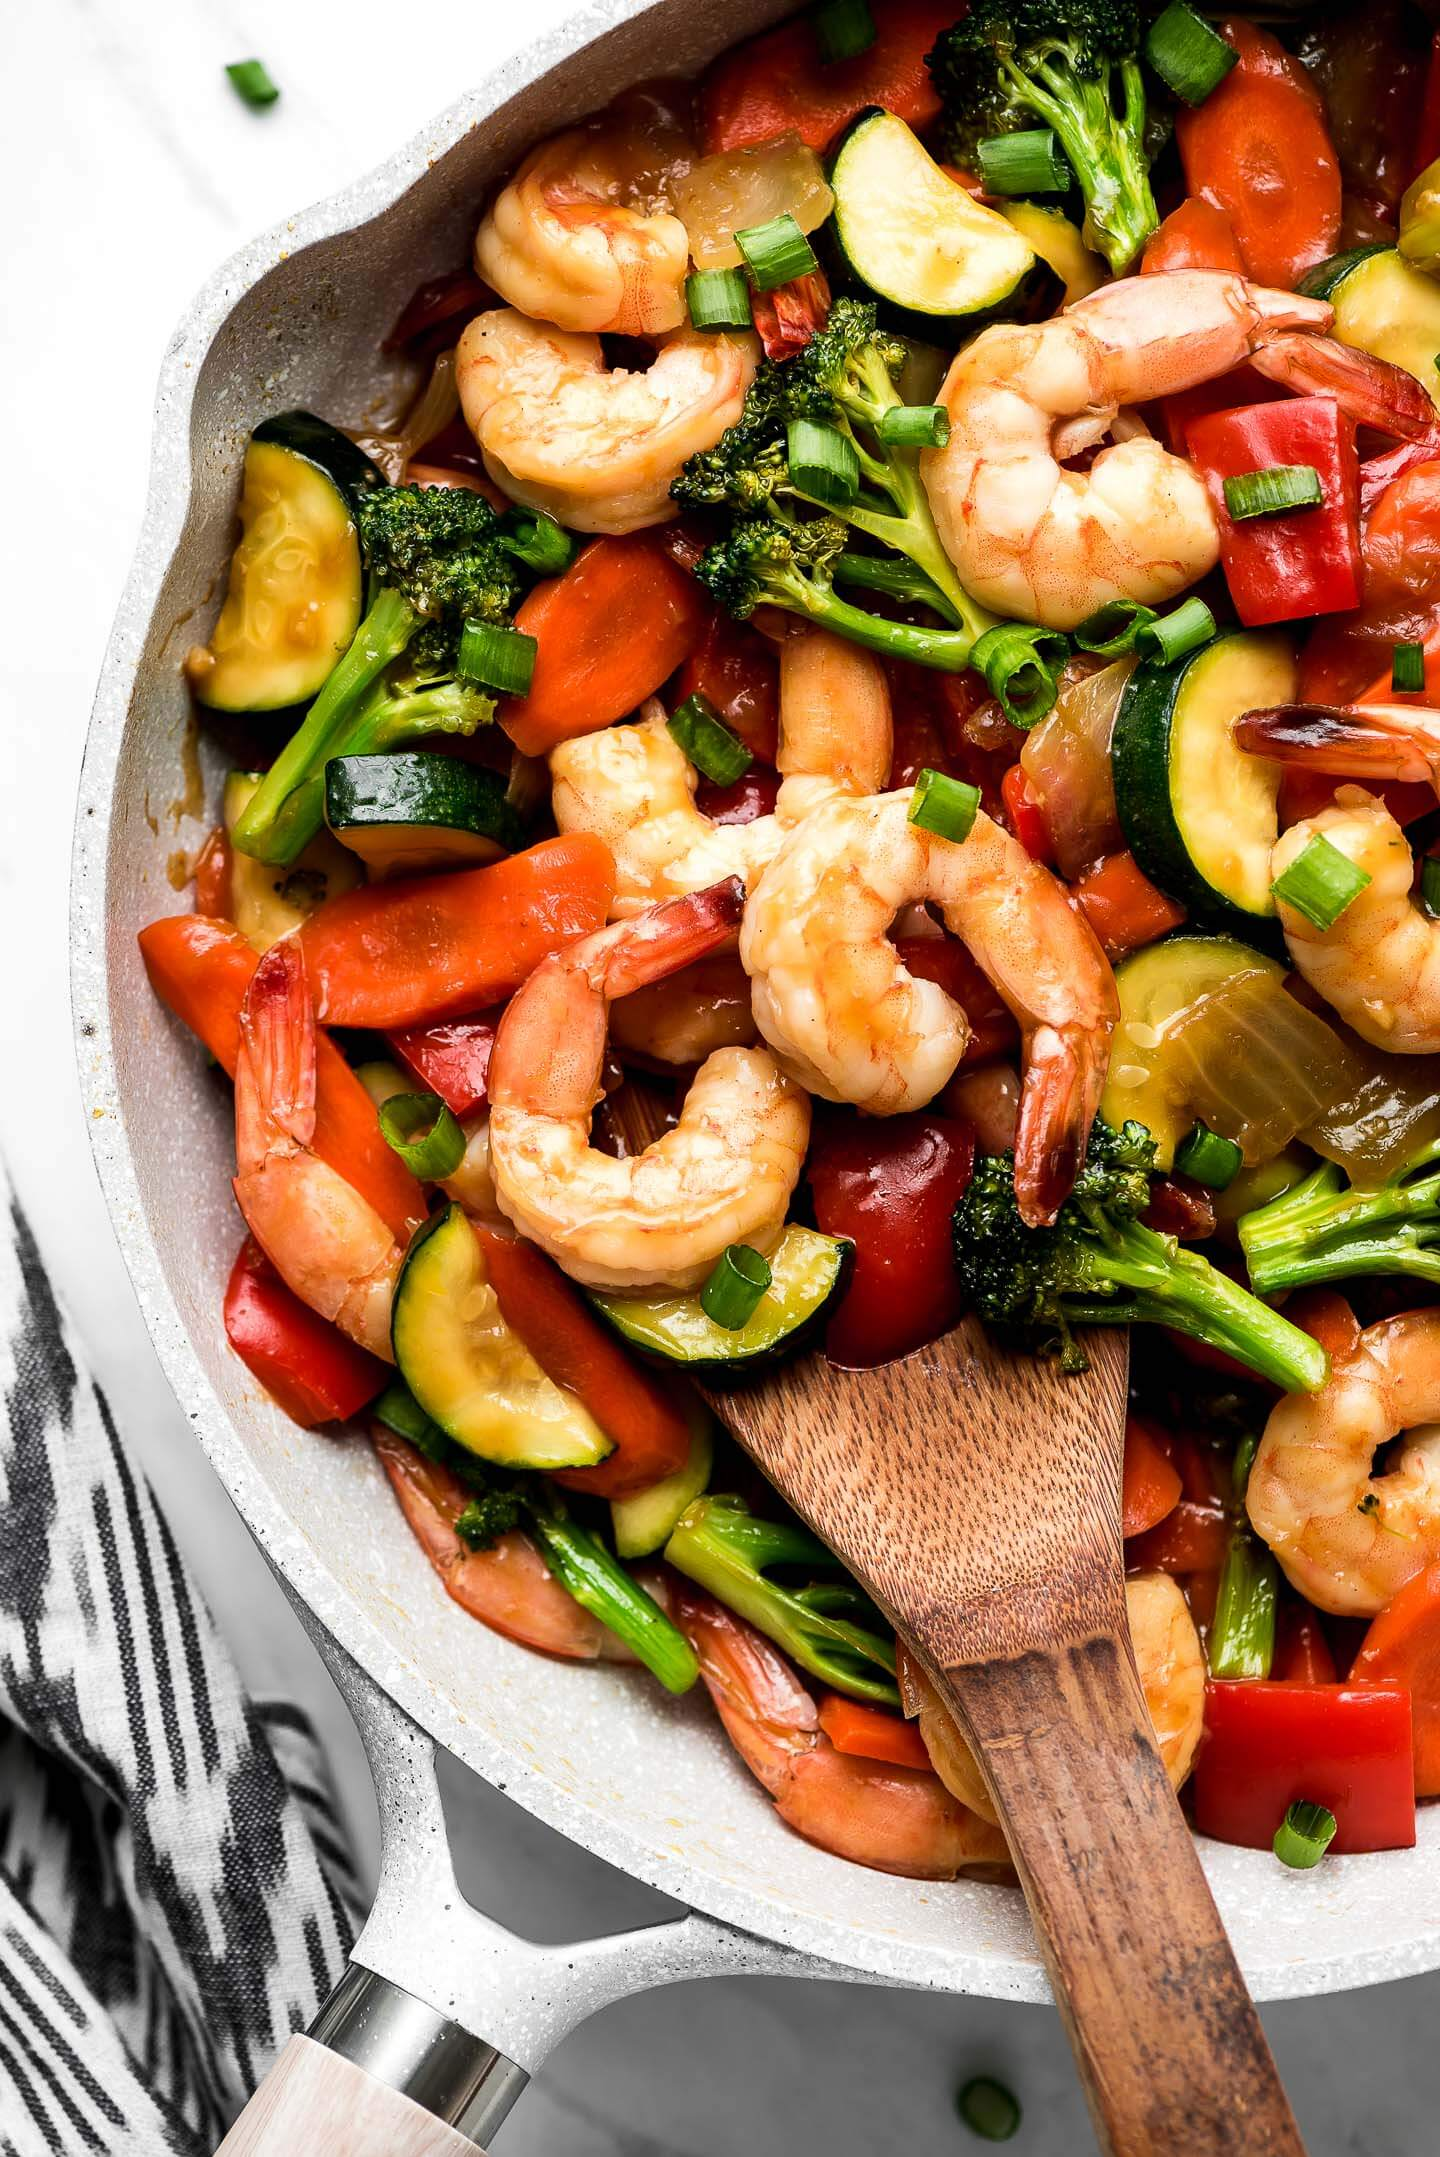 Close up shot of Shrimp Stir Fry in a pan with a wooden spoon about to lift some out.